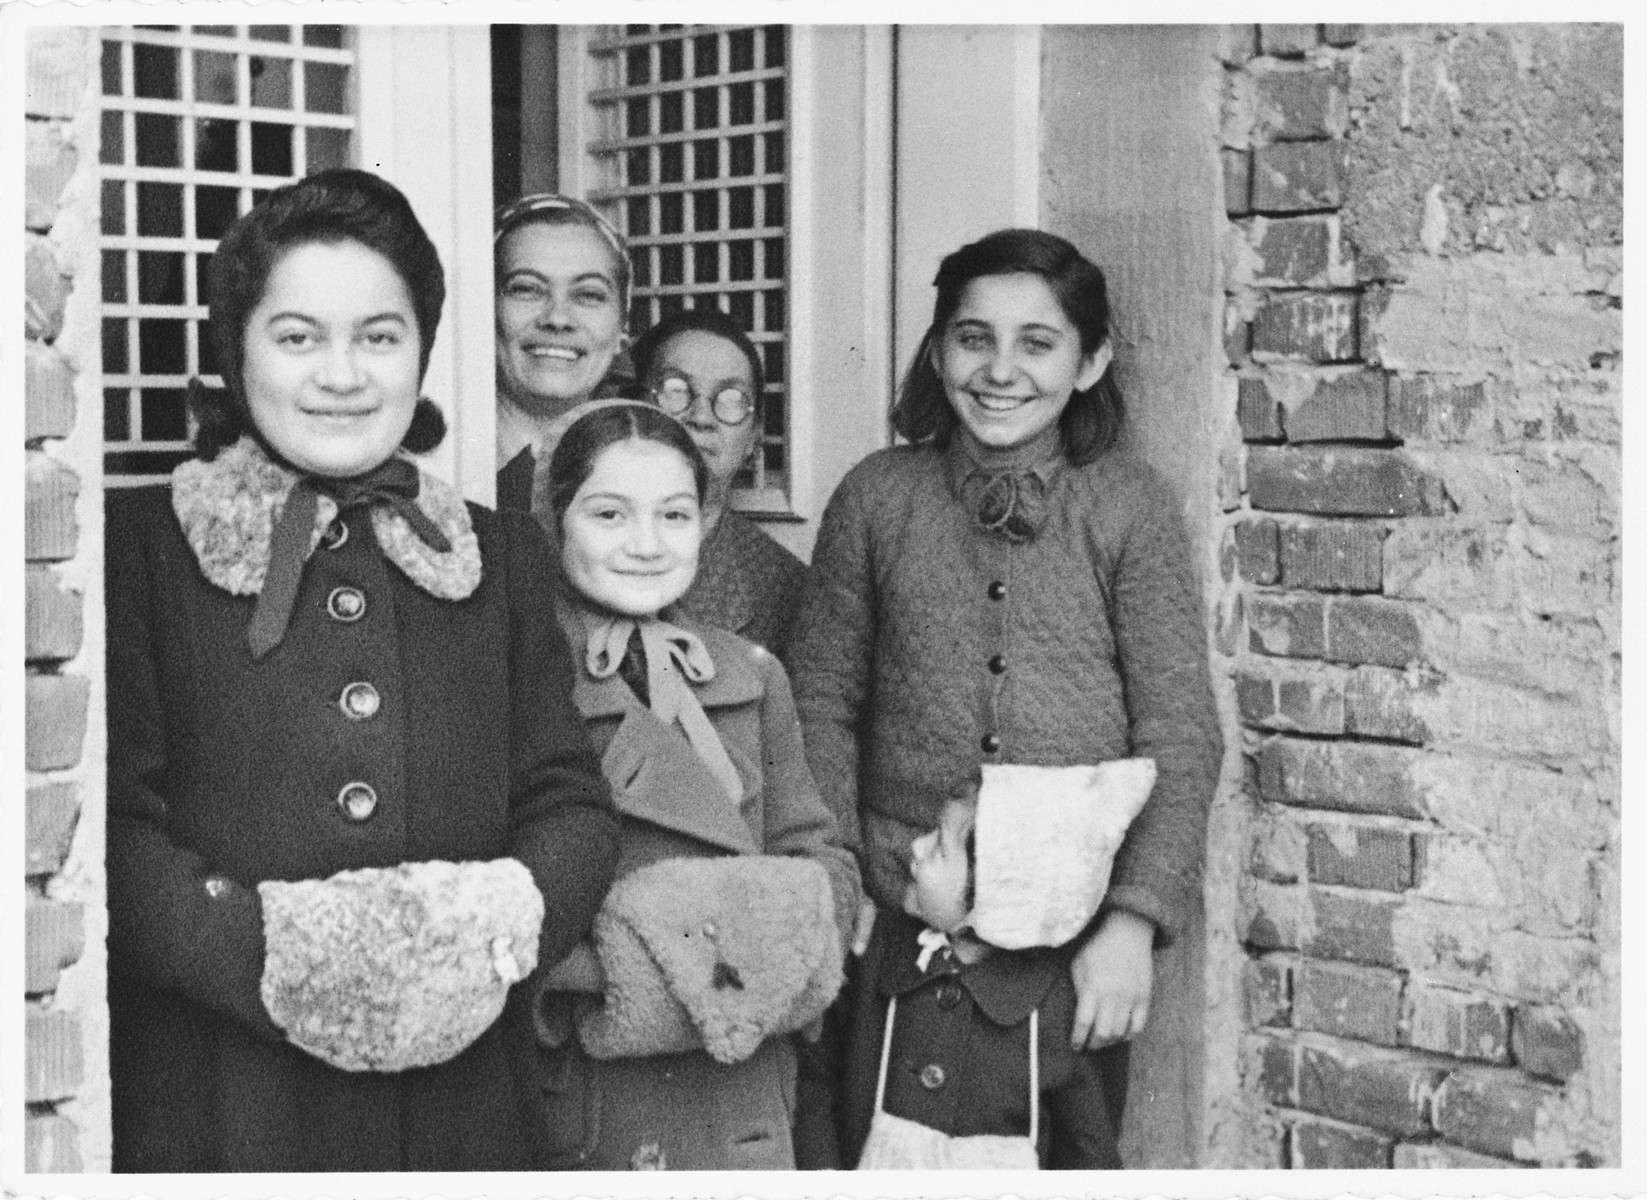 A Jewish family poses with their Croatian neighbors and friends.  Pictured in the ffront from left to right are: Zdenka and Vera Apler and their young cousin Dorica (Theodora) Basch.  Standing behind them are Blanka Apler (the mother of Vera and Zdenka), Maria Runjak and Stefica Grabaric.